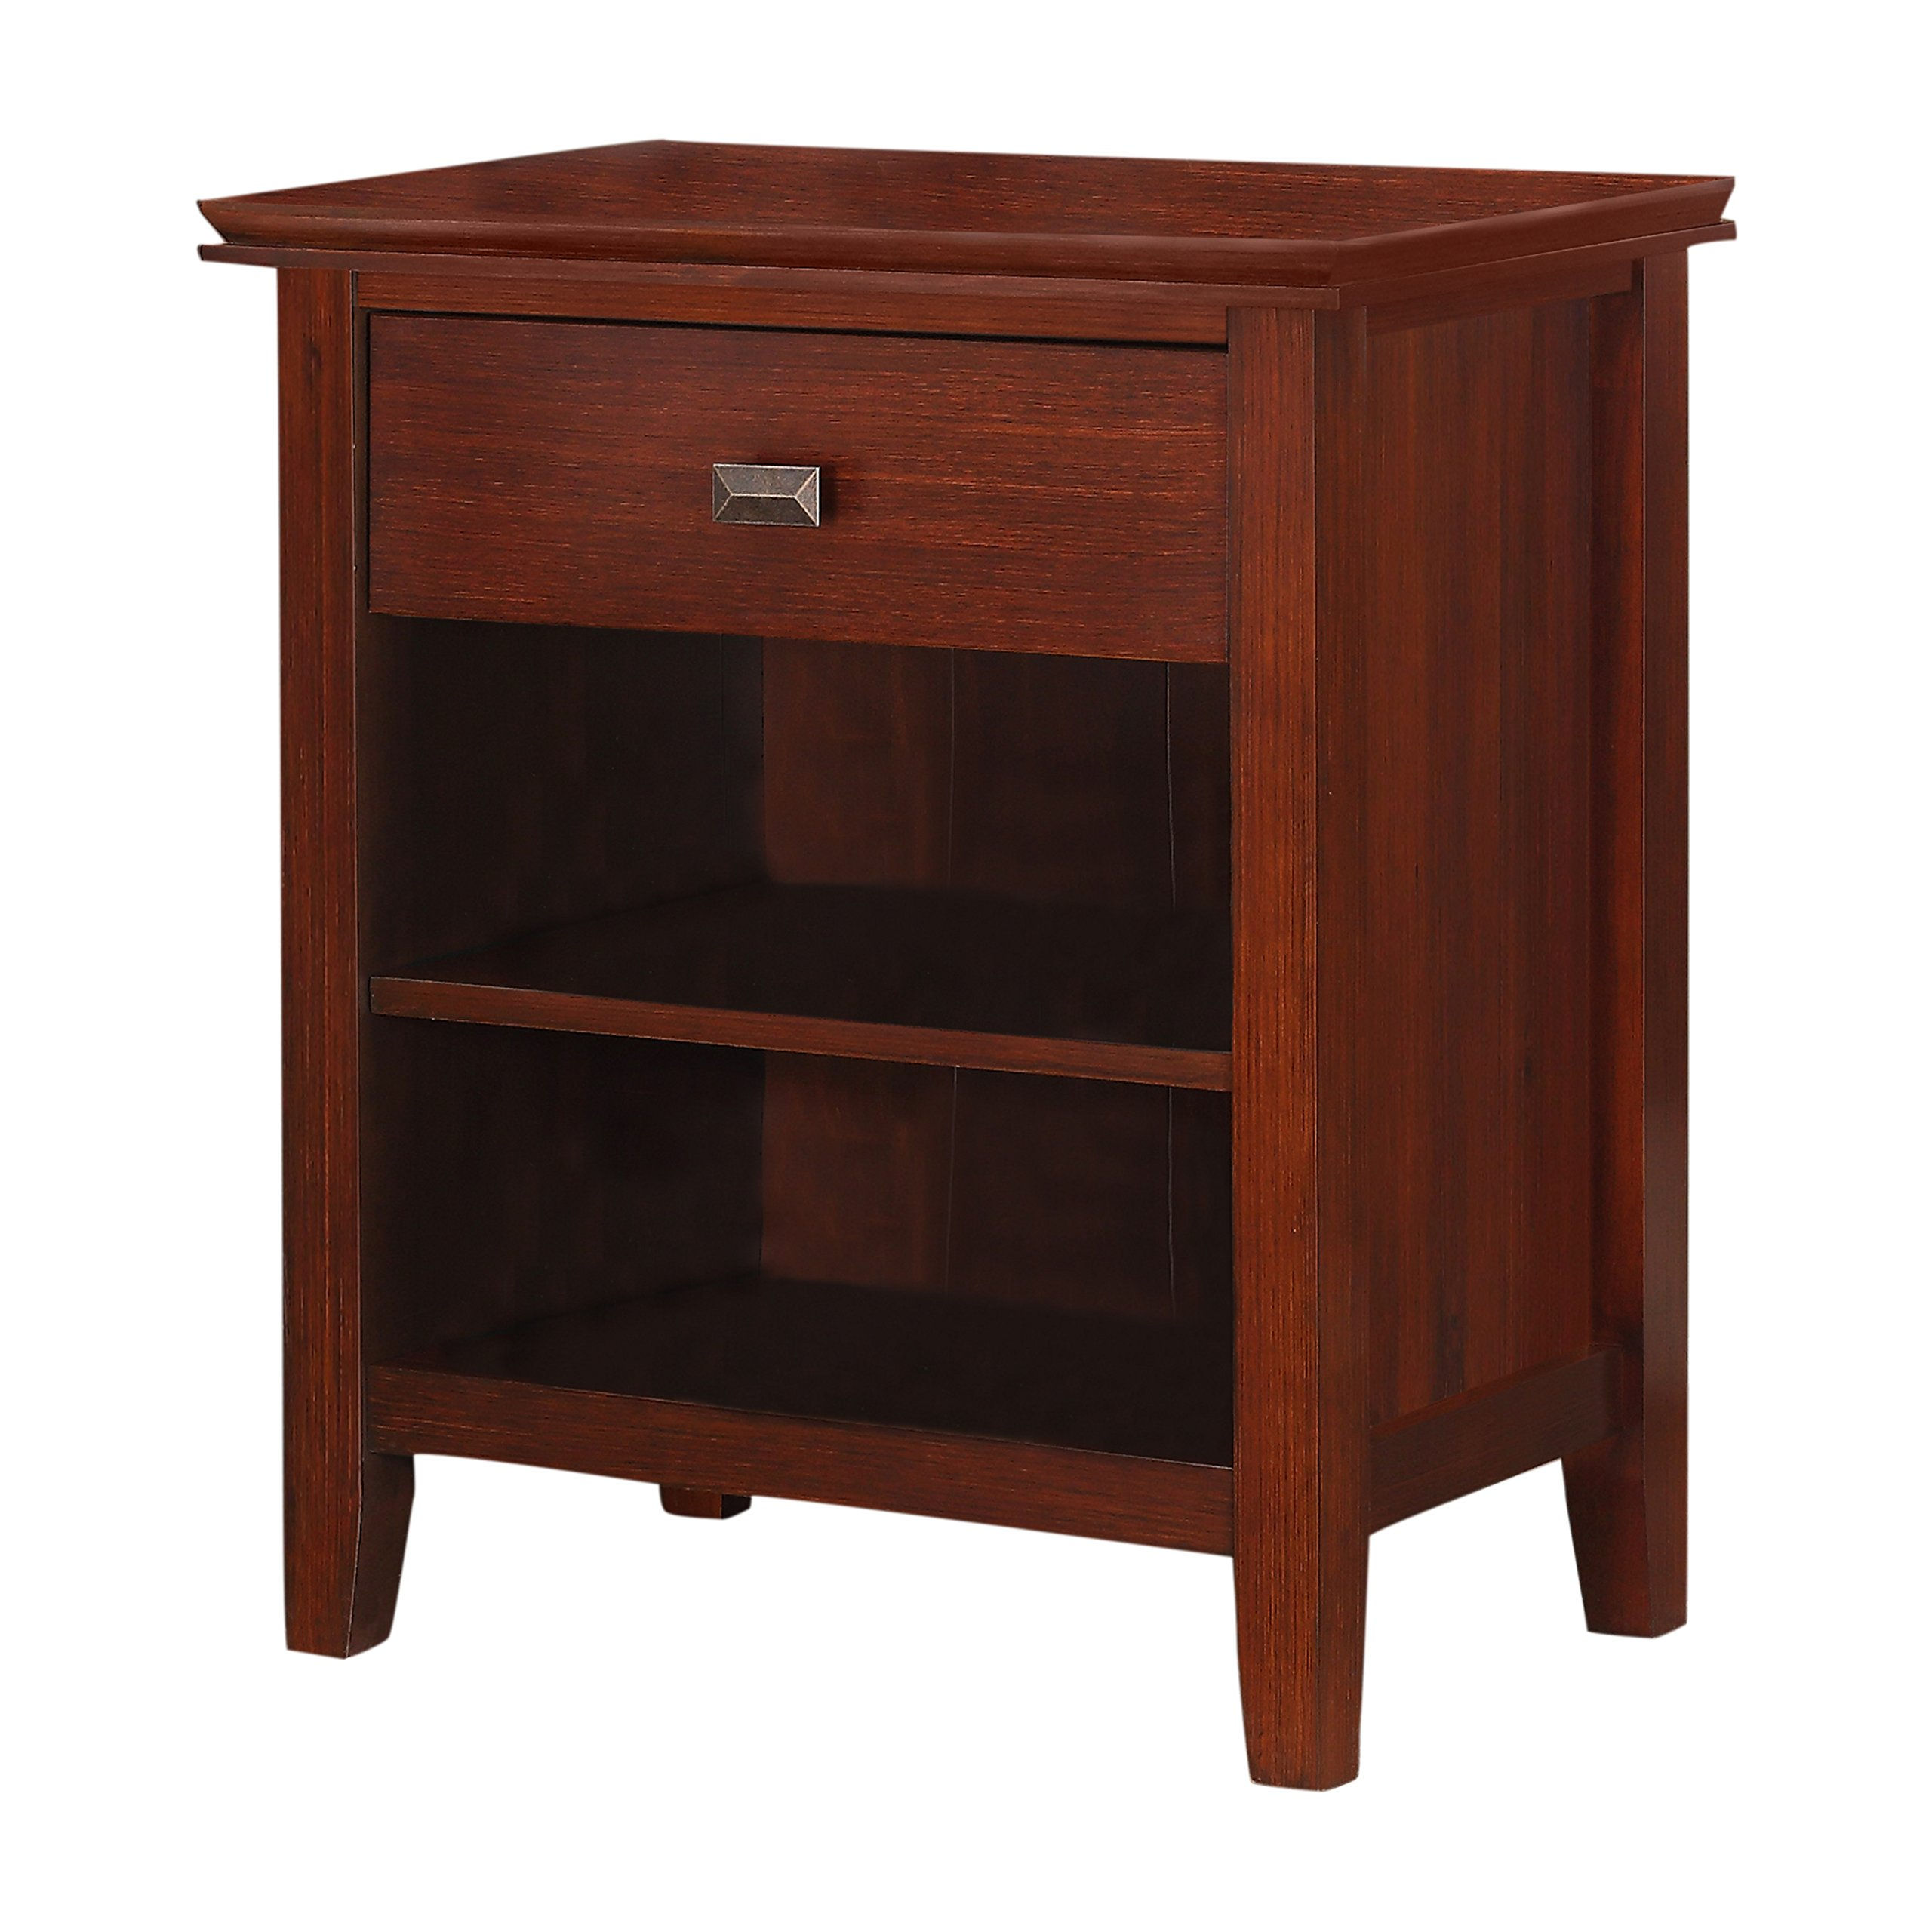 Simpli Home Artisan Bedside Table, Medium Auburn Brown, Standard